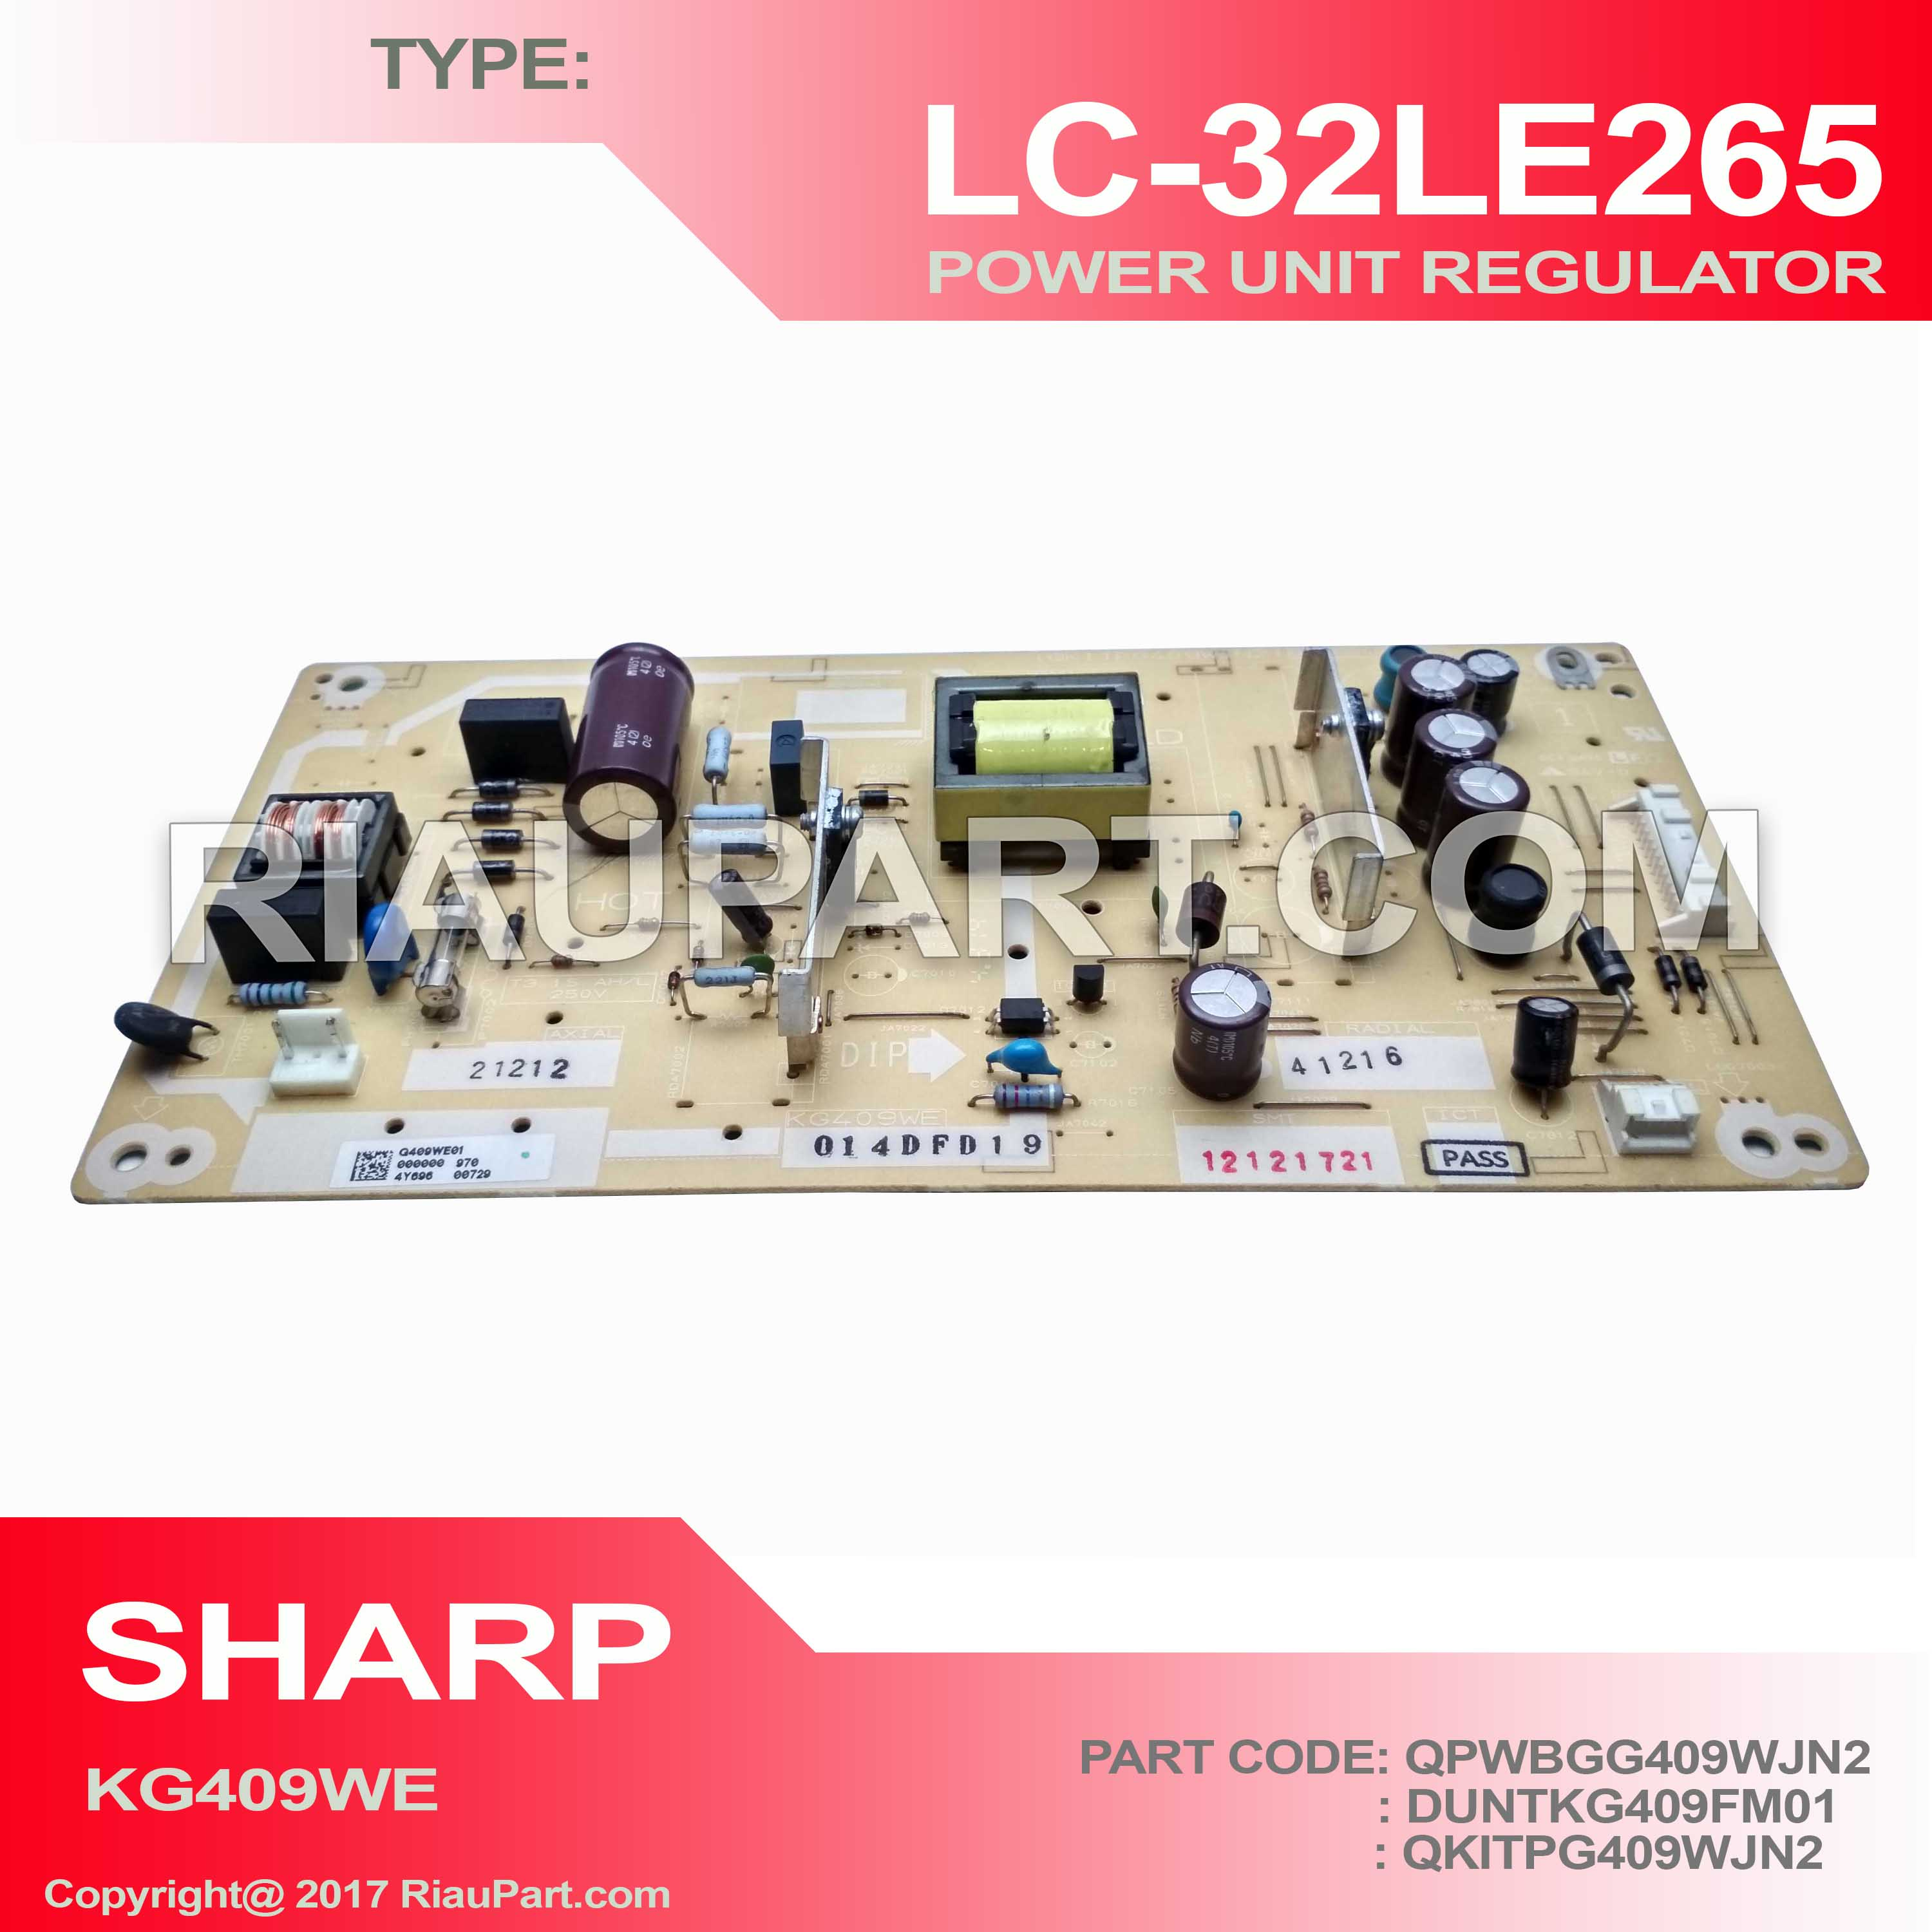 POWER SUPPLY REGULATOR TV SHARP LC-32LE265M LC-32LE265I LC32LE265 LC-32LE260M LC-32LE260I LC32LE260 PART CODE QPWBGG409WJN2 KG409W